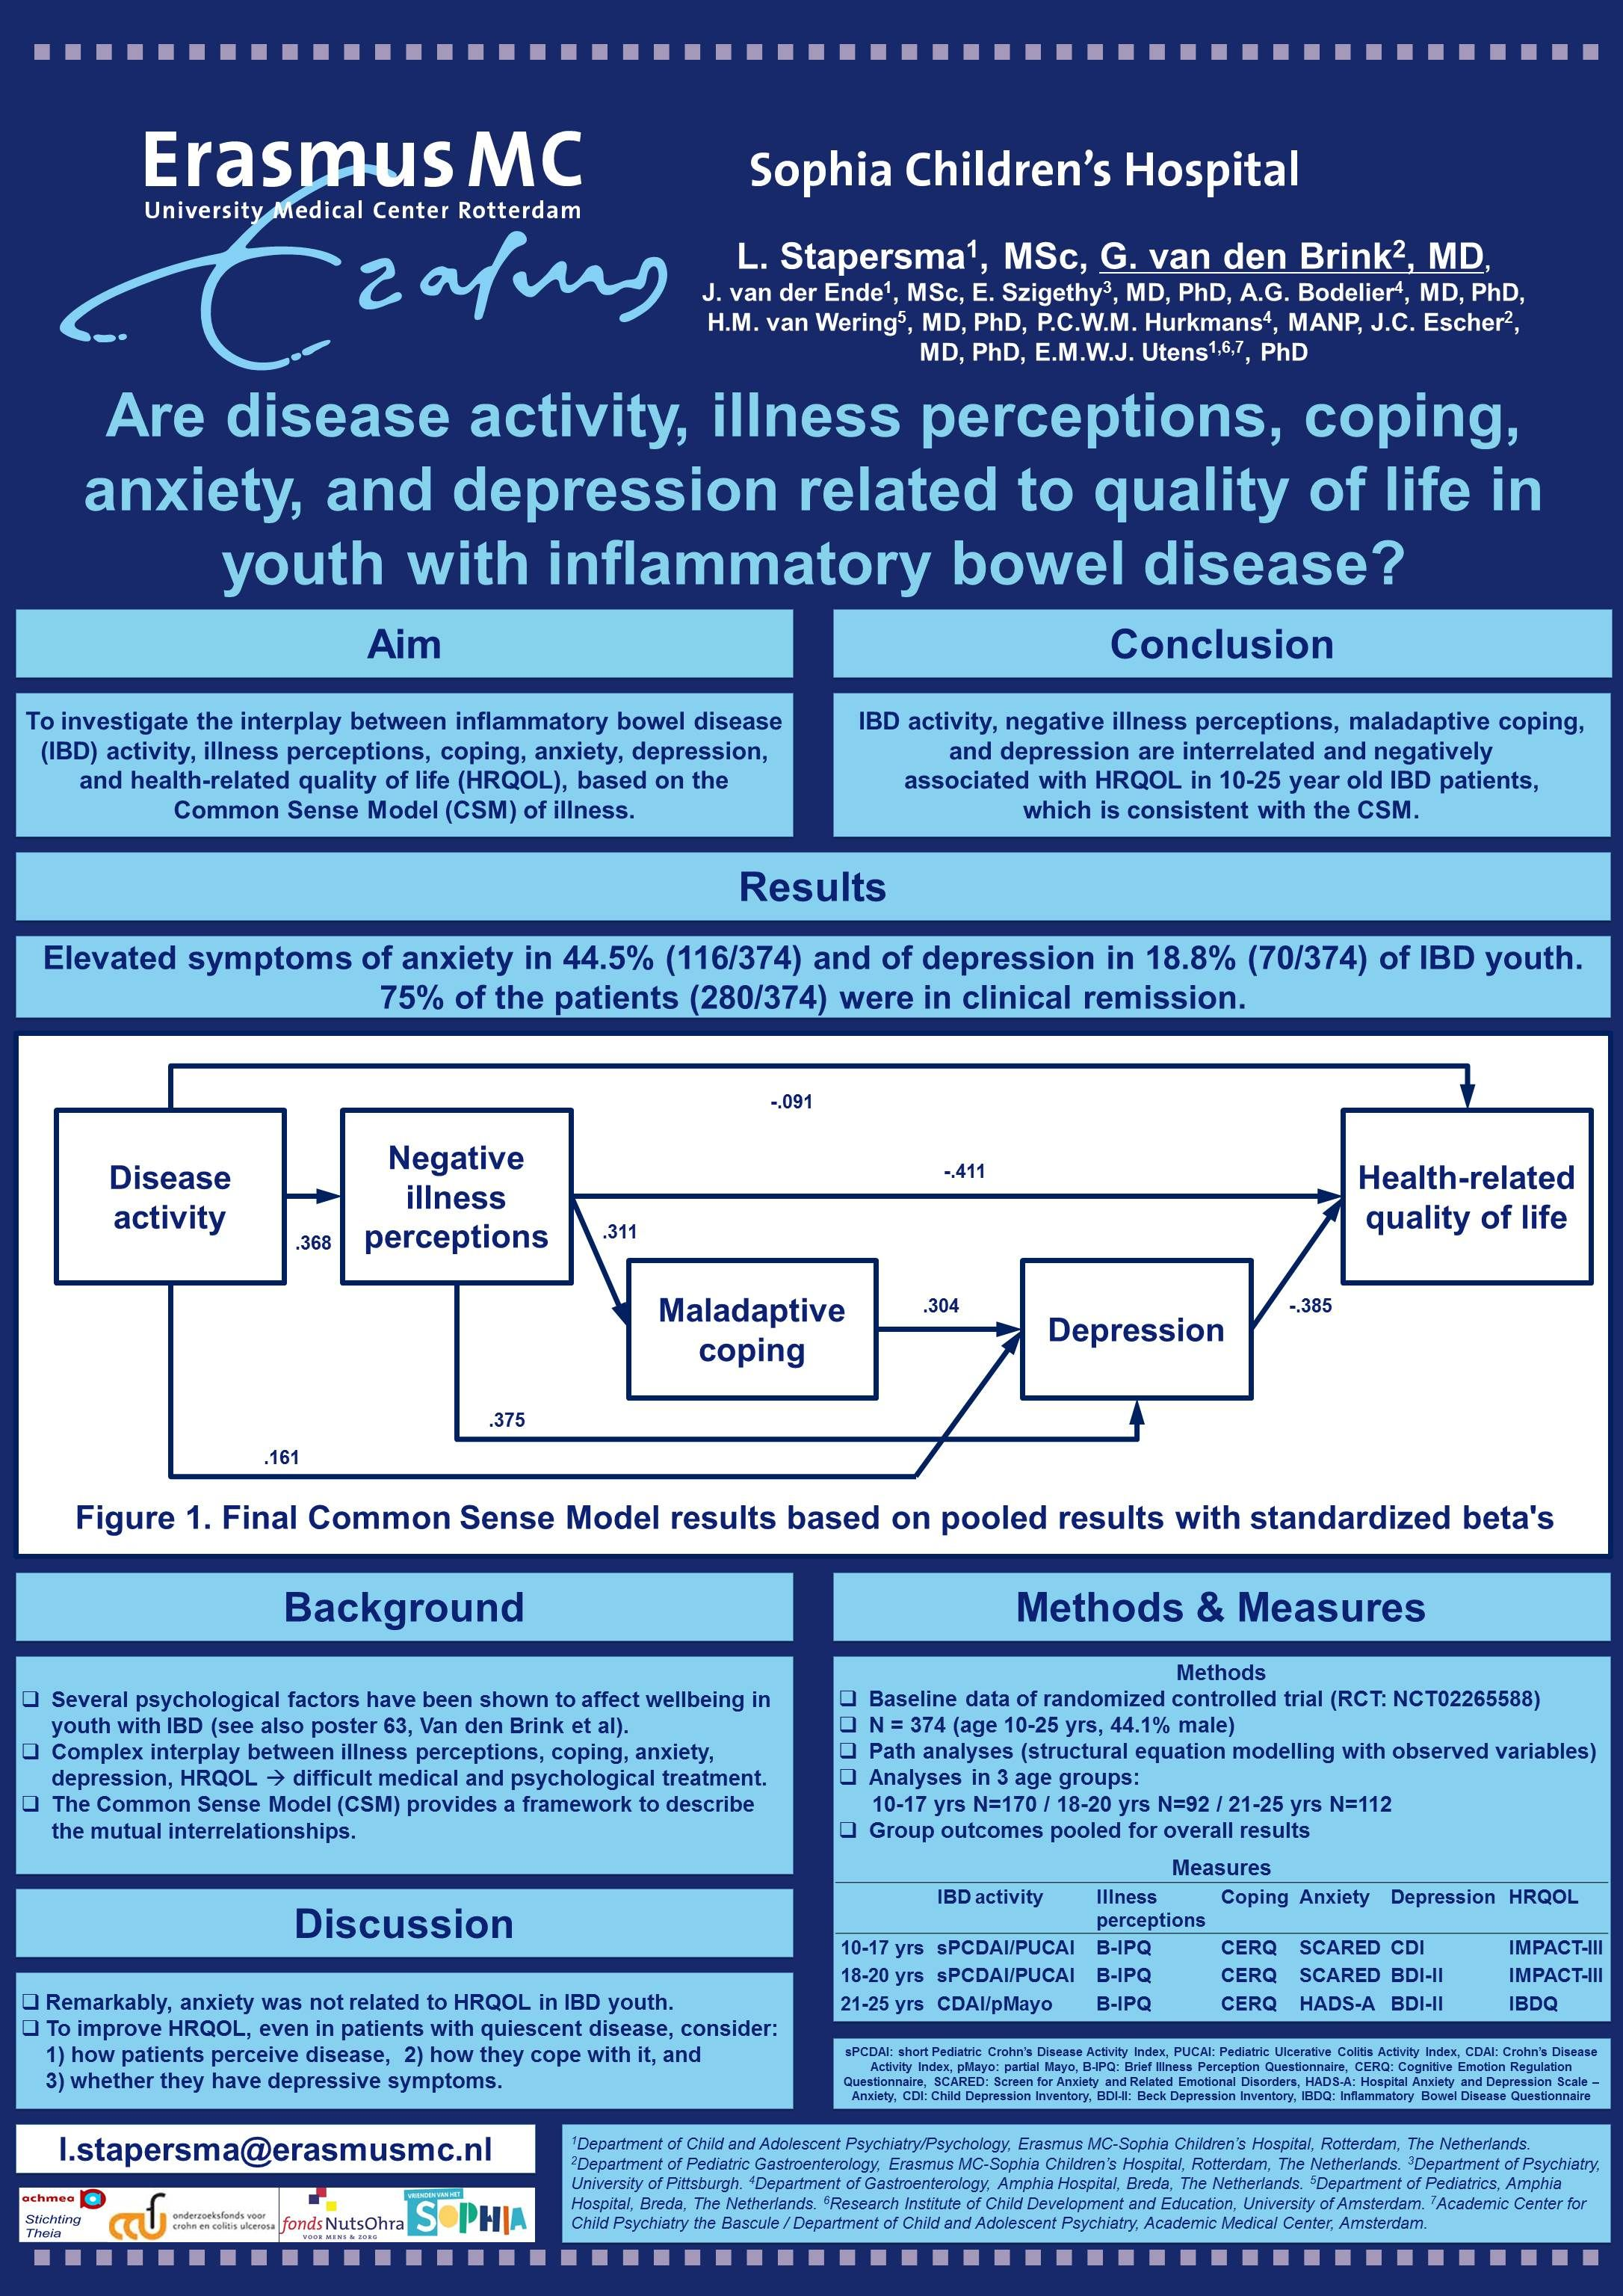 ARE DISEASE ACTIVITY, ILLNESS PERCEPTIONS, COPING, ANXIETY